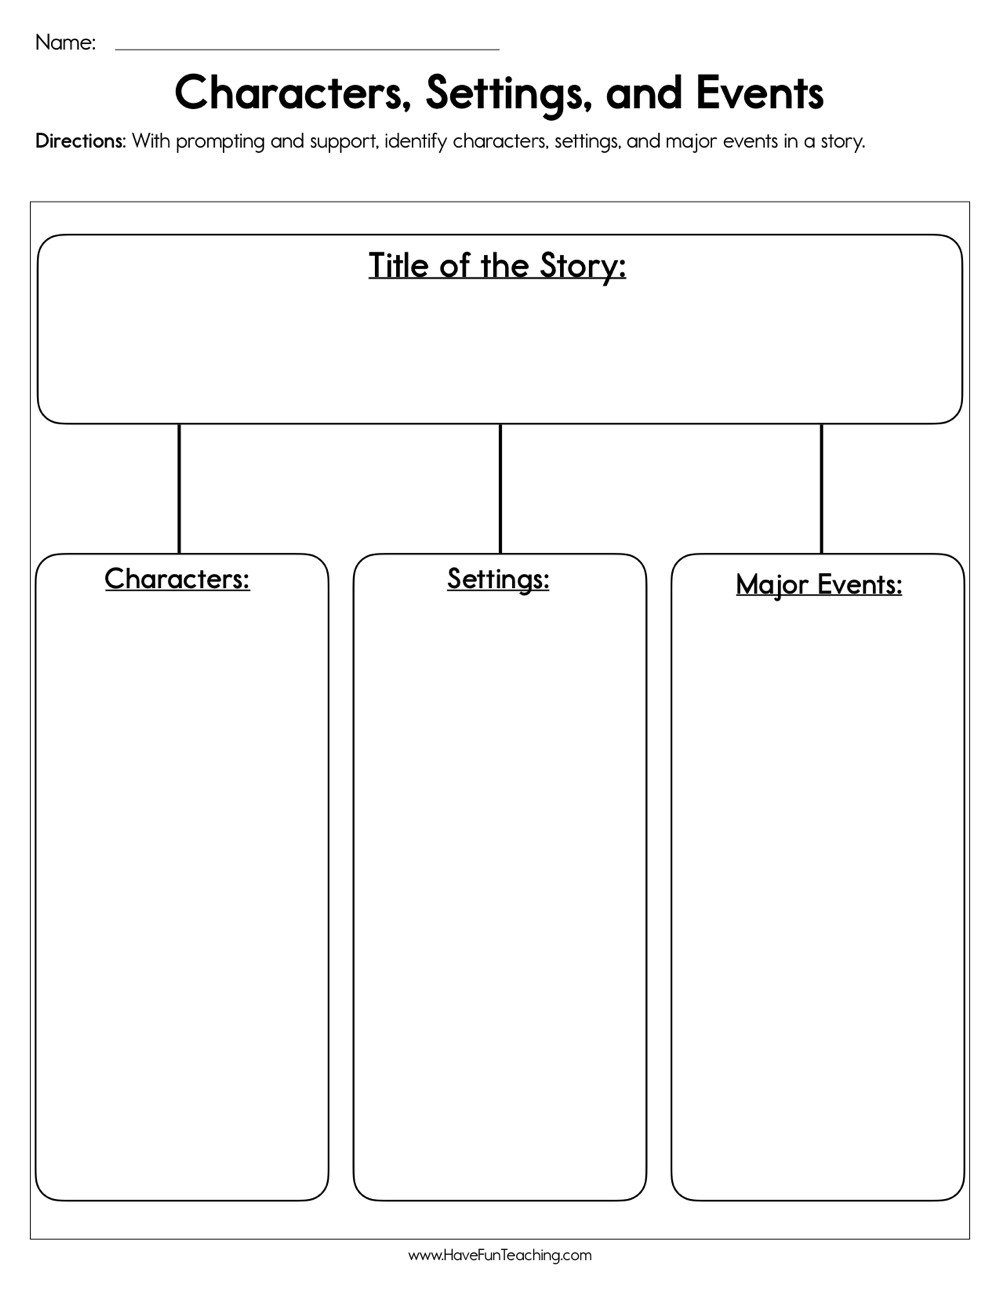 Character and Setting Worksheets Characters Settings and events Worksheet